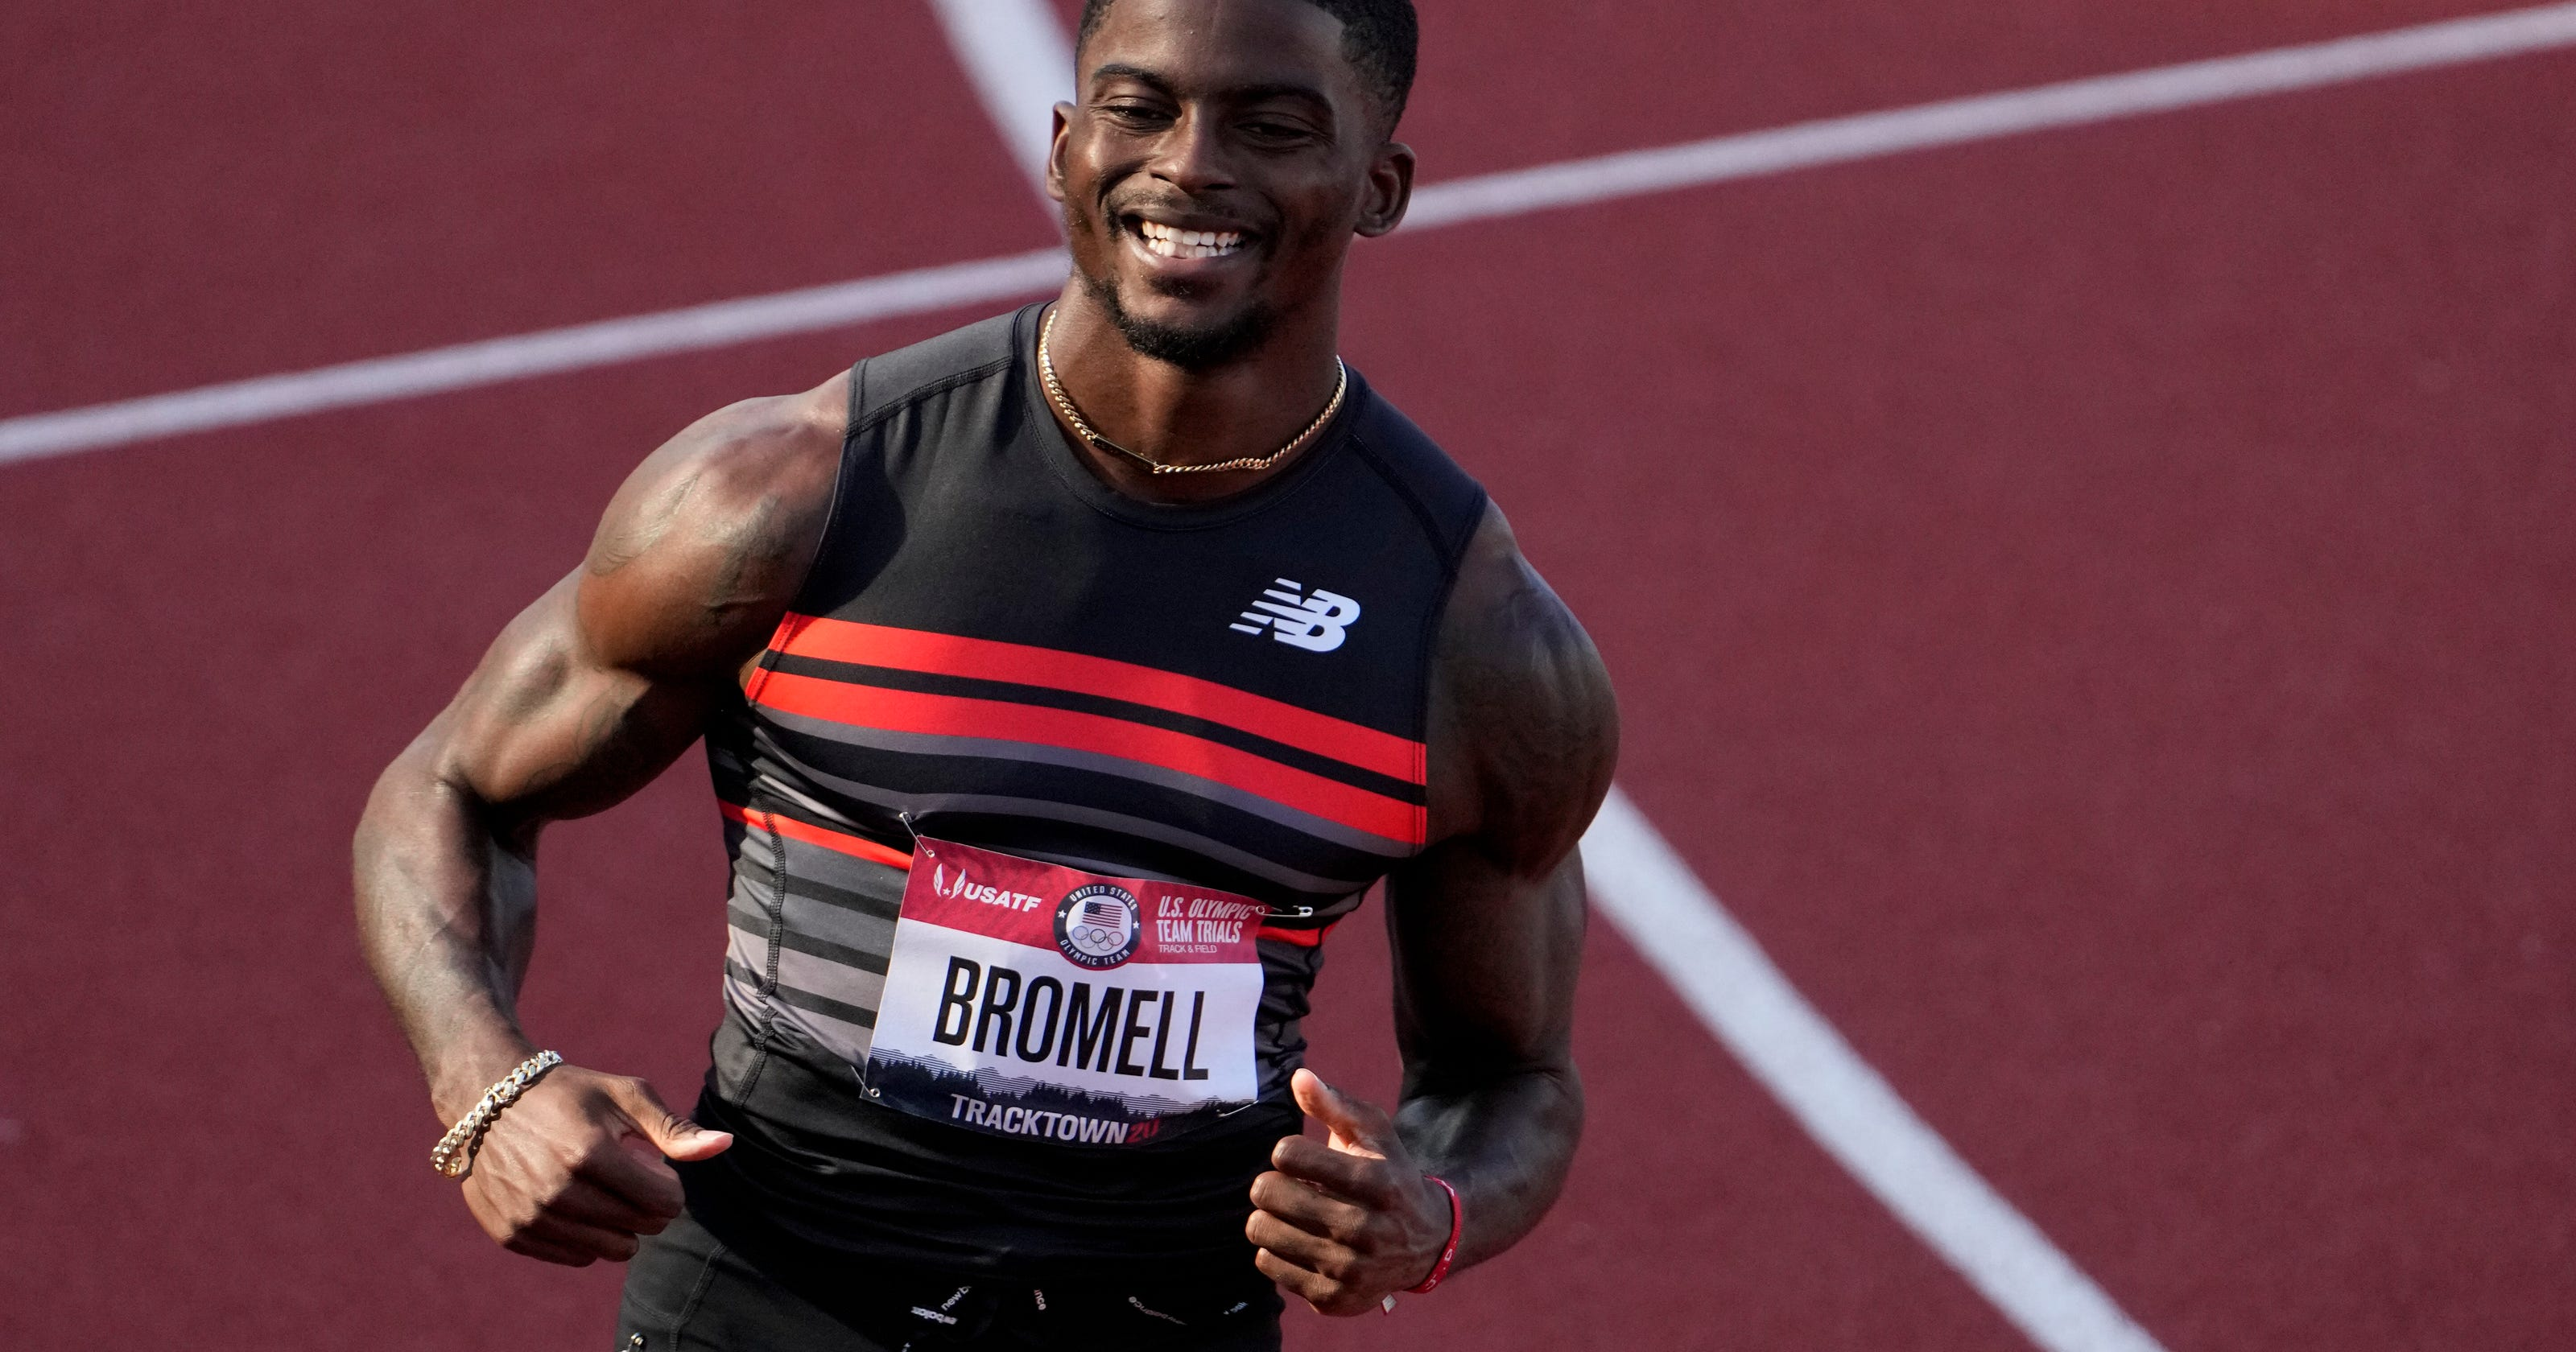 Injuries now behind him, Trayvon Bromell wins men's 100m to secure spot at Tokyo Olympics